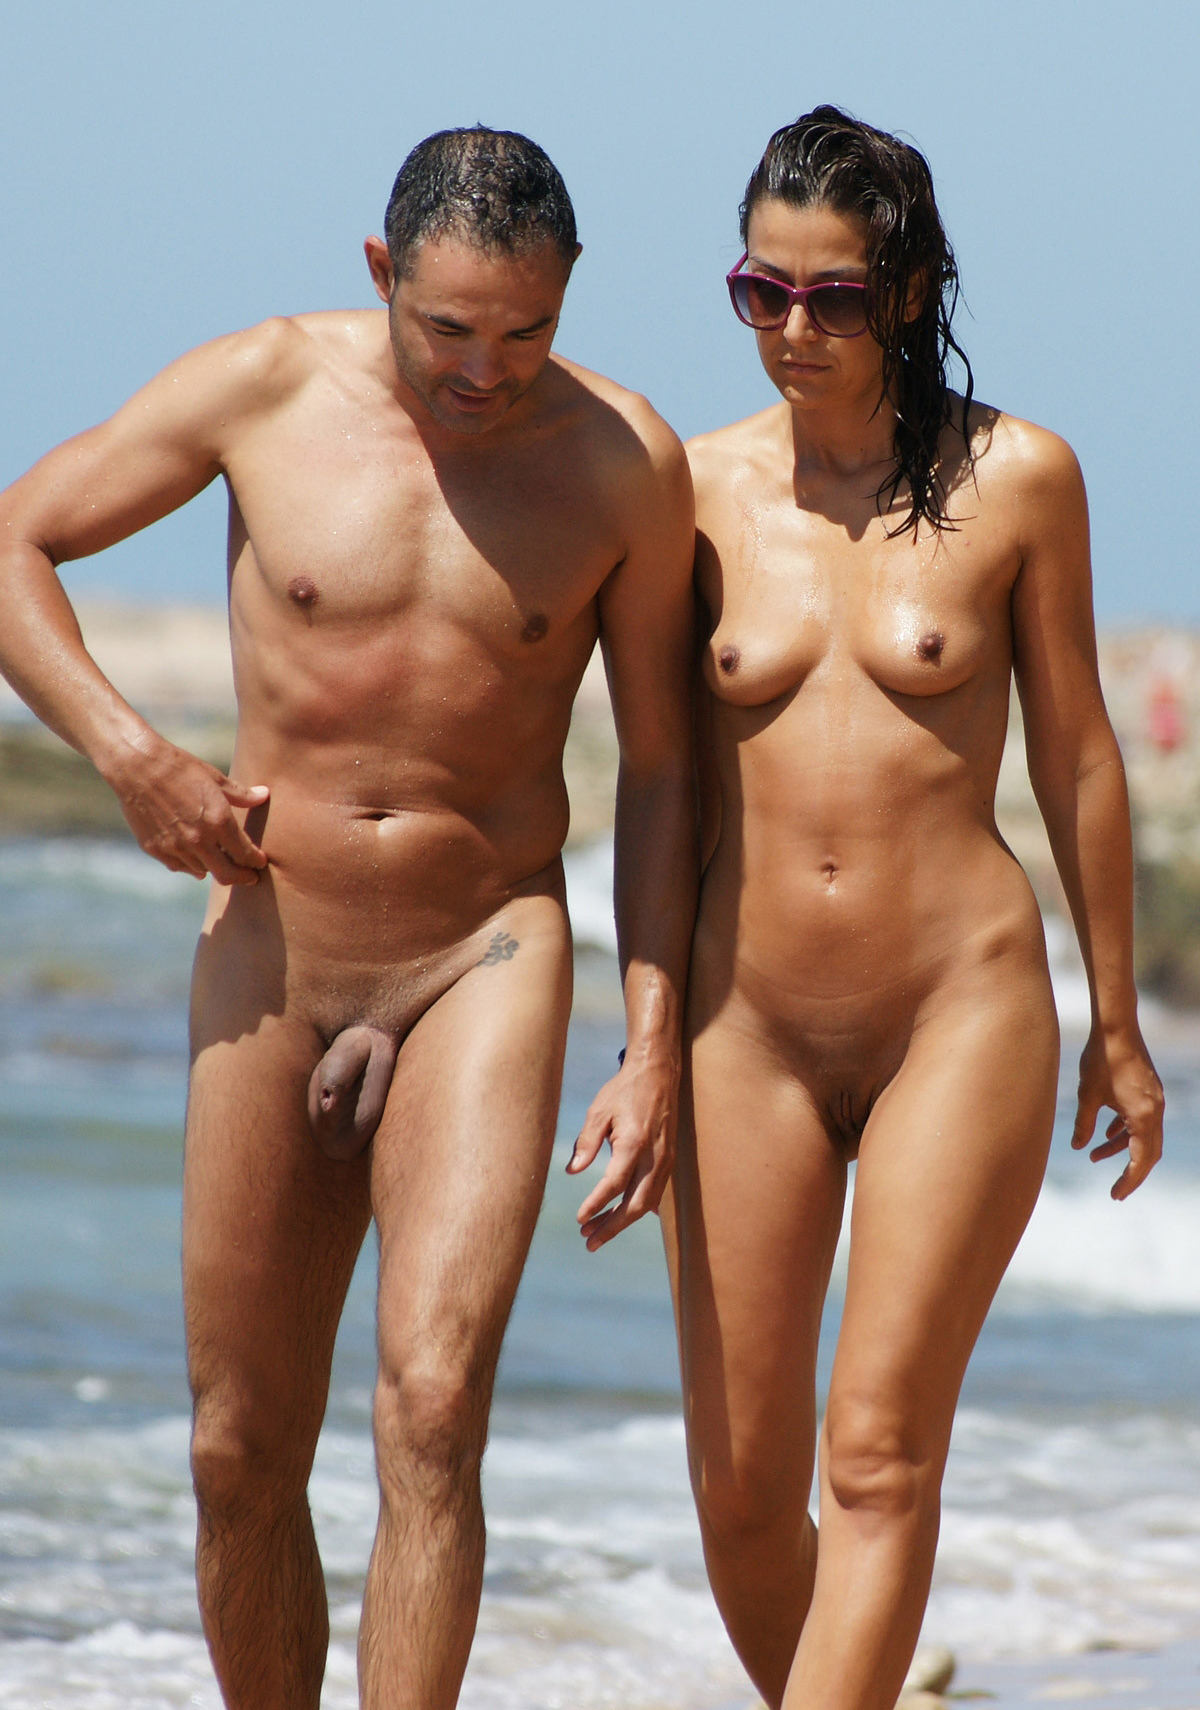 Agree with Couples nude body paint are absolutely